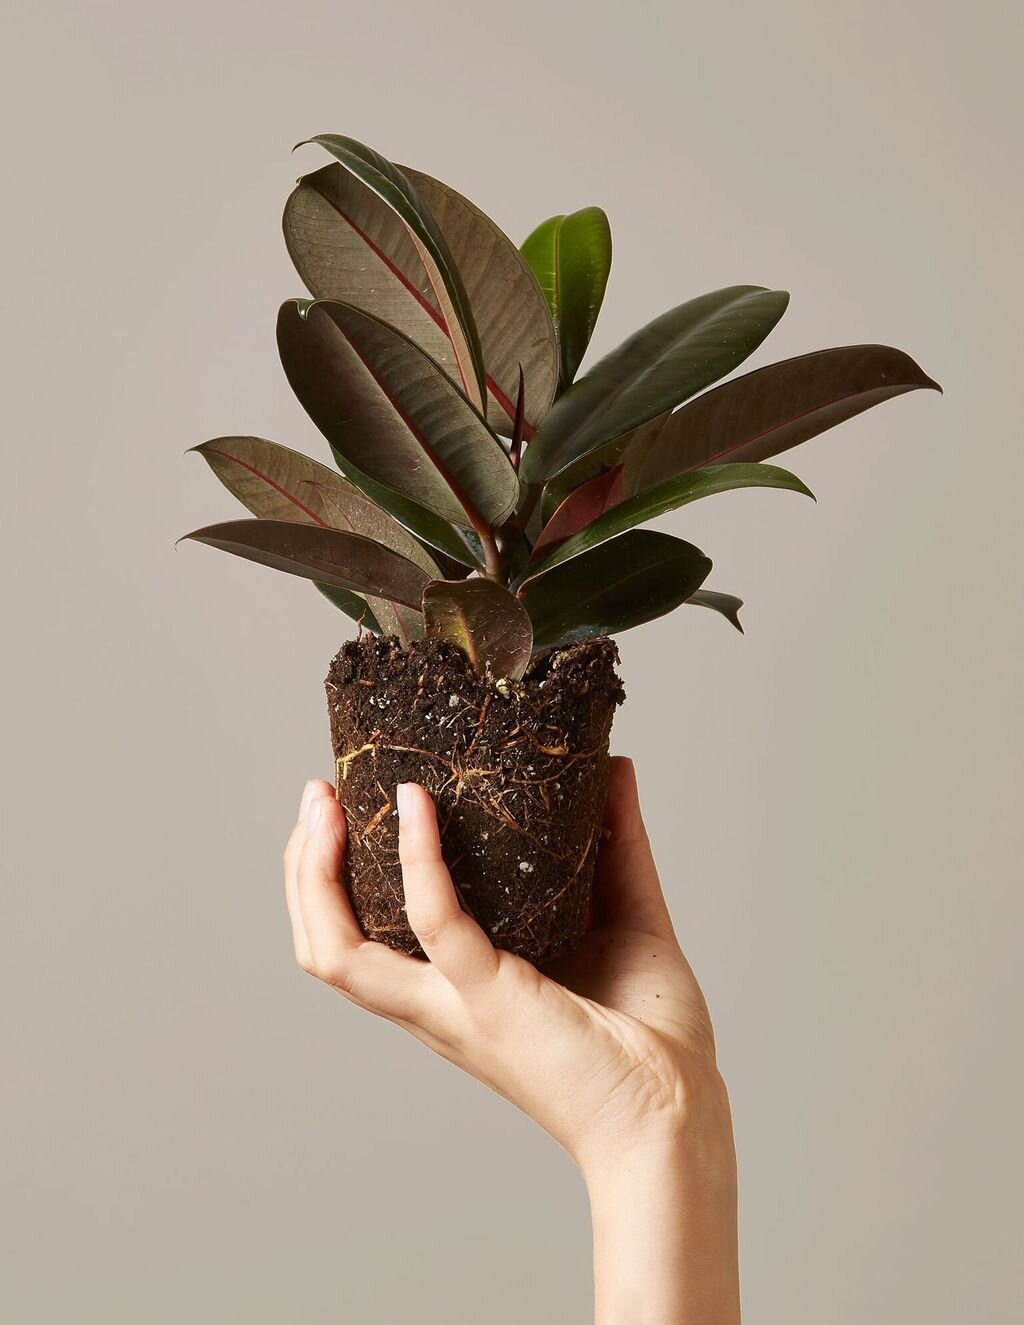 8 Moving Tips for Transporting Your Houseplants Safely ... on brown decor ideas, brown before and after, brown lashes, brown concrete, brown artificial nails, brown italian shoes, brown tablescapes, brown examples, brown template, brown hair, brown swatches, brown styles, brown extensions, brown pedicure, brown ends, brown streaks, brown low lights, brown french nails, brown in italian, brown modern house,